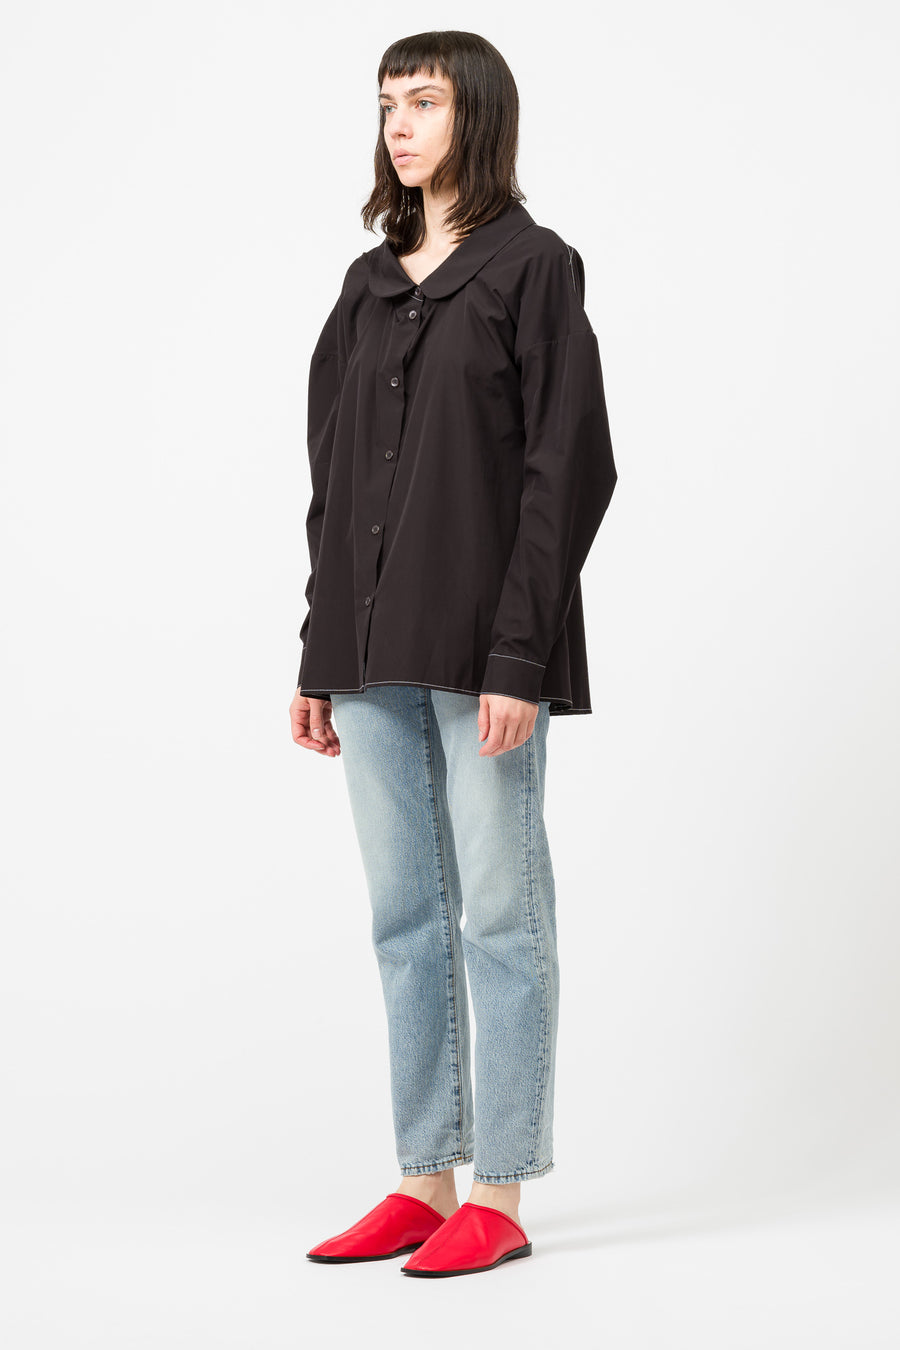 Marni L/S Crew Neck Shirt in Black - Notre